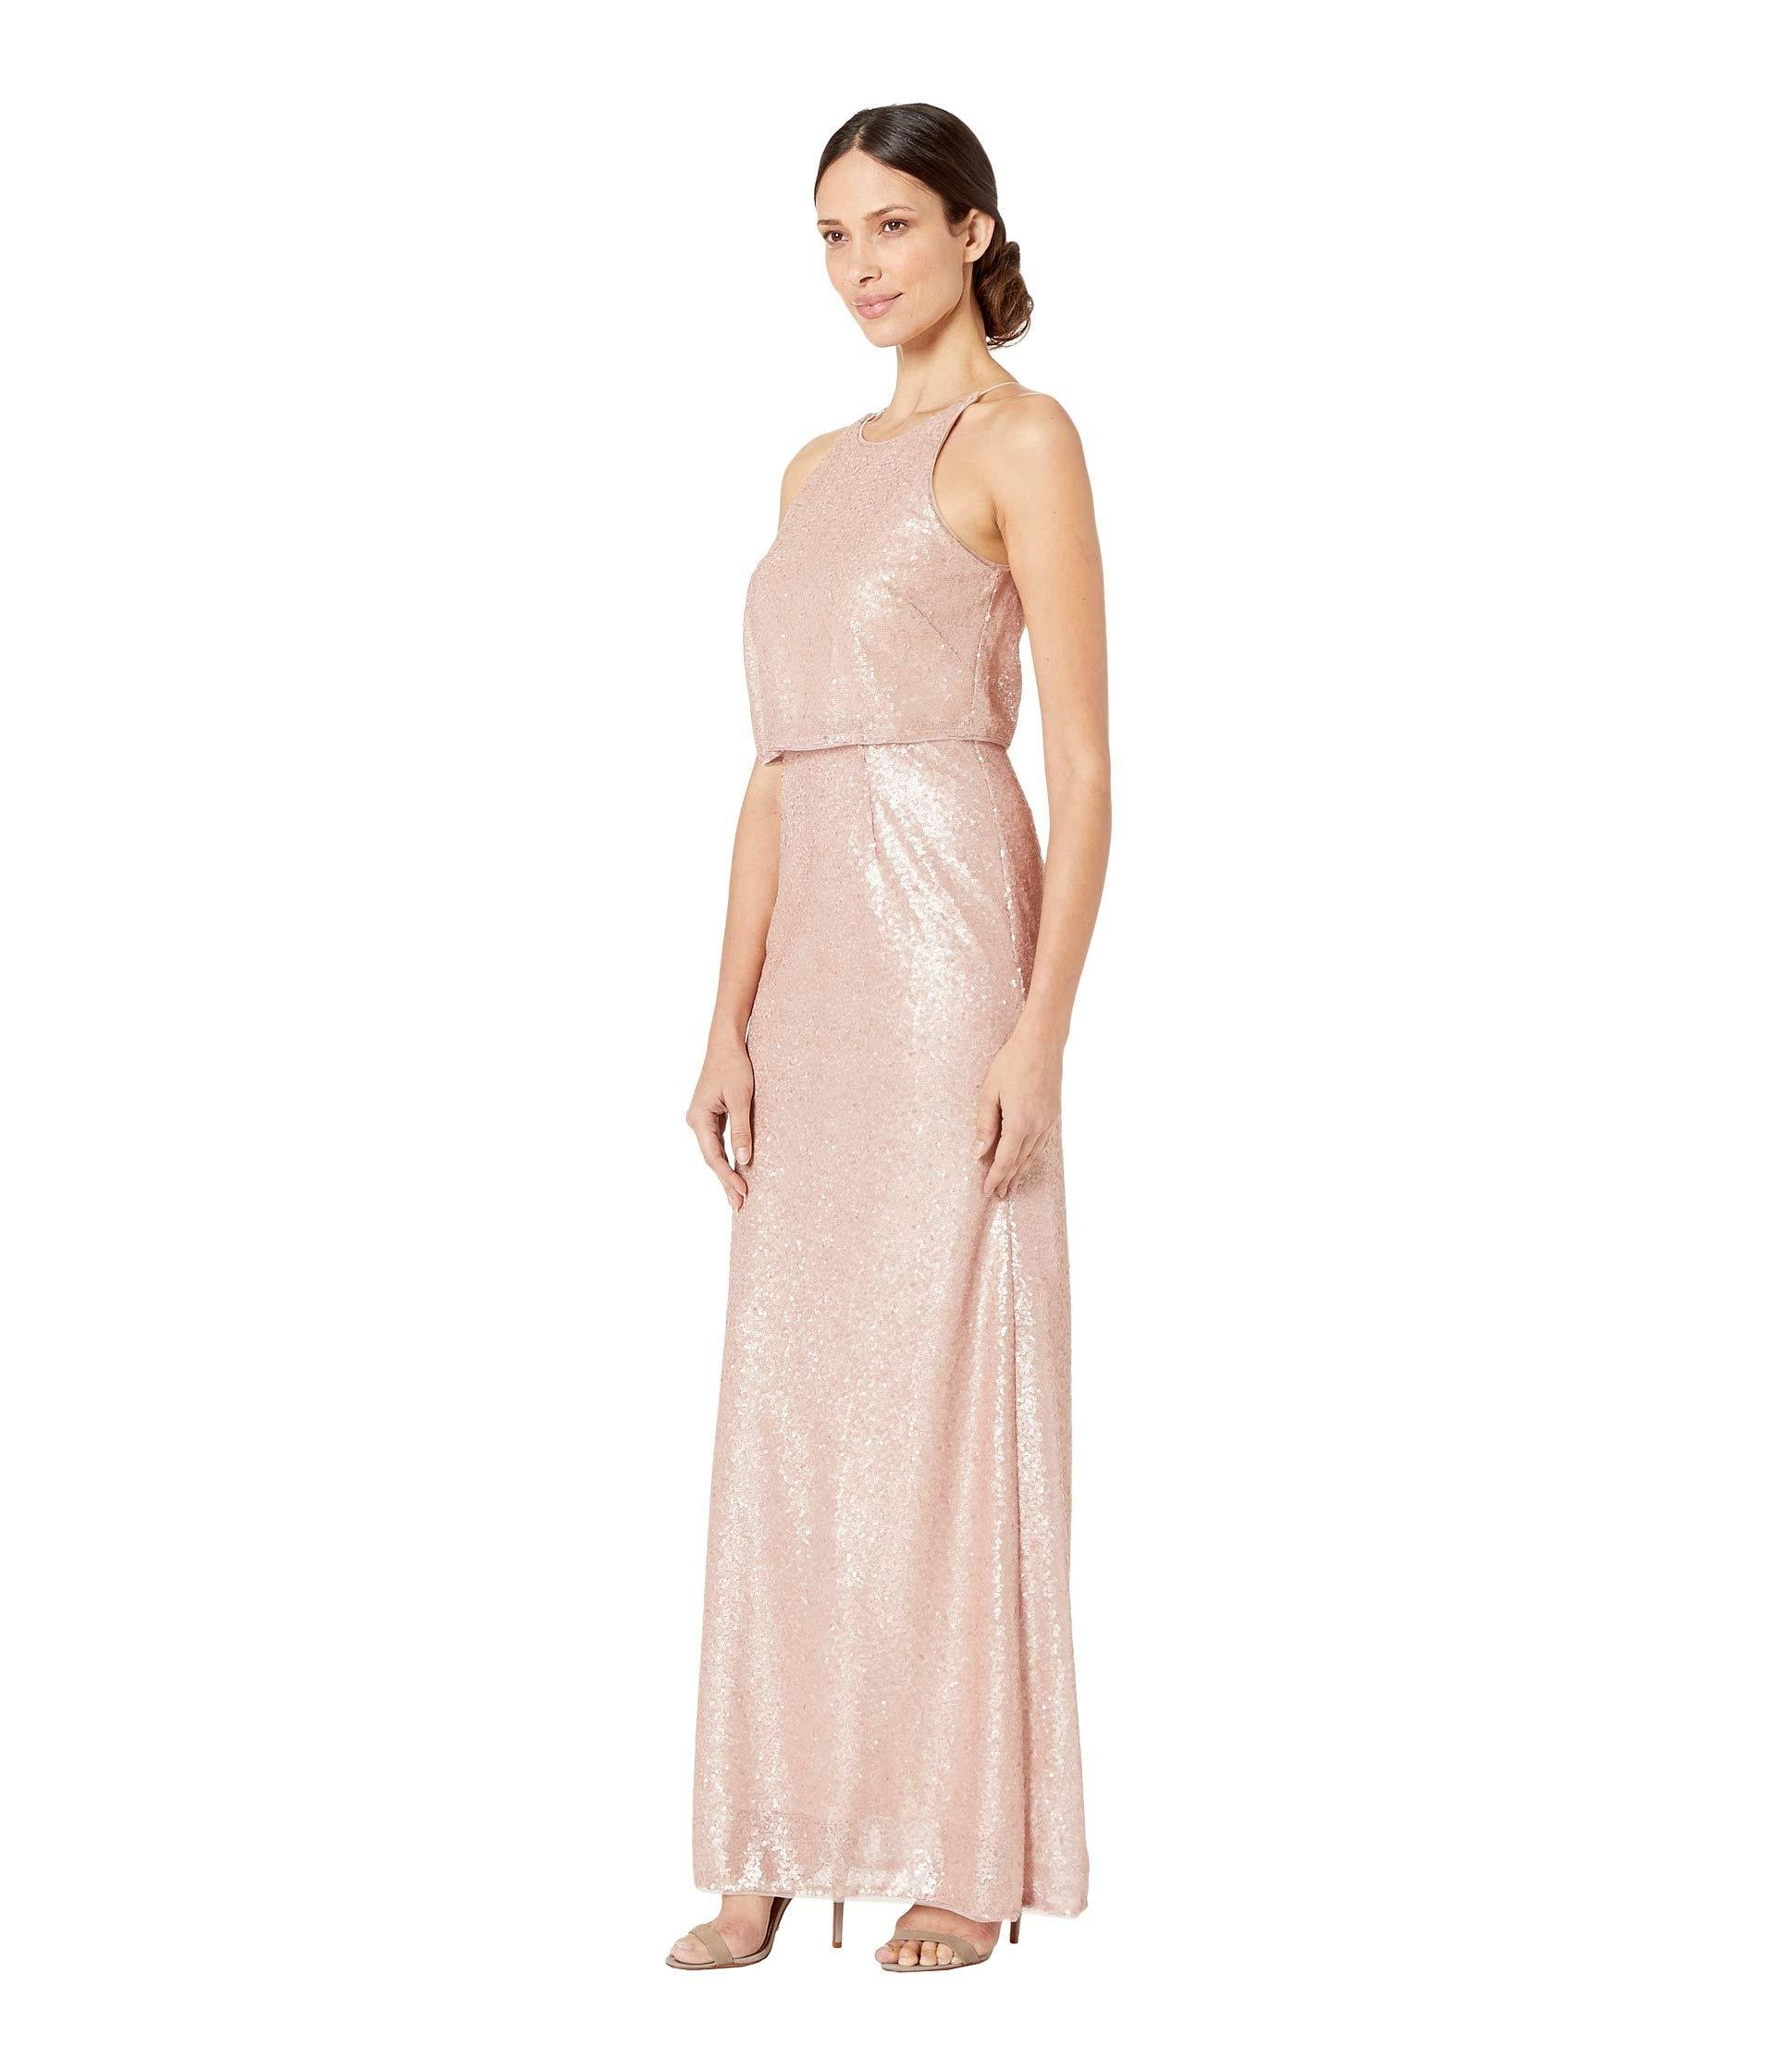 d83cacff Adrianna Papell Sequin Halter Popover Modified Mermaid Evening Gown (blush)  Women's Dress in Pink - Lyst